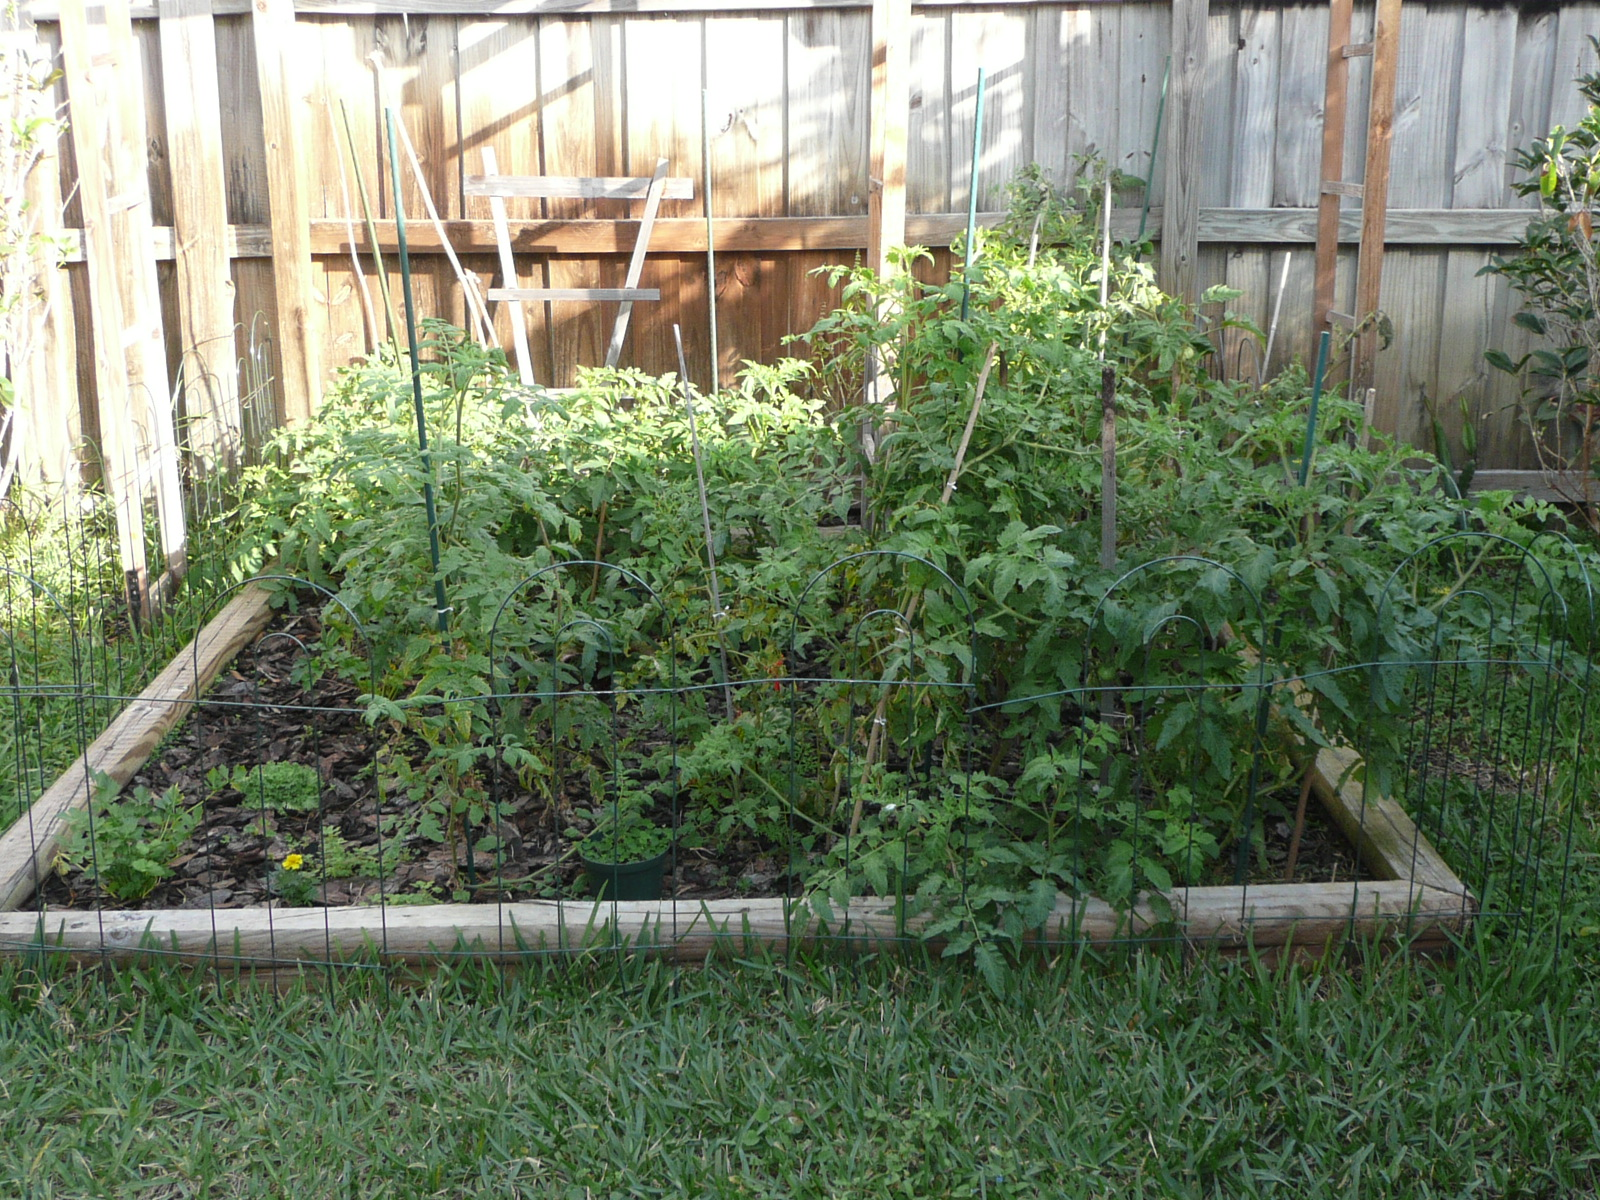 Gardening south florida style vegetable garden - South florida vegetable gardening ...